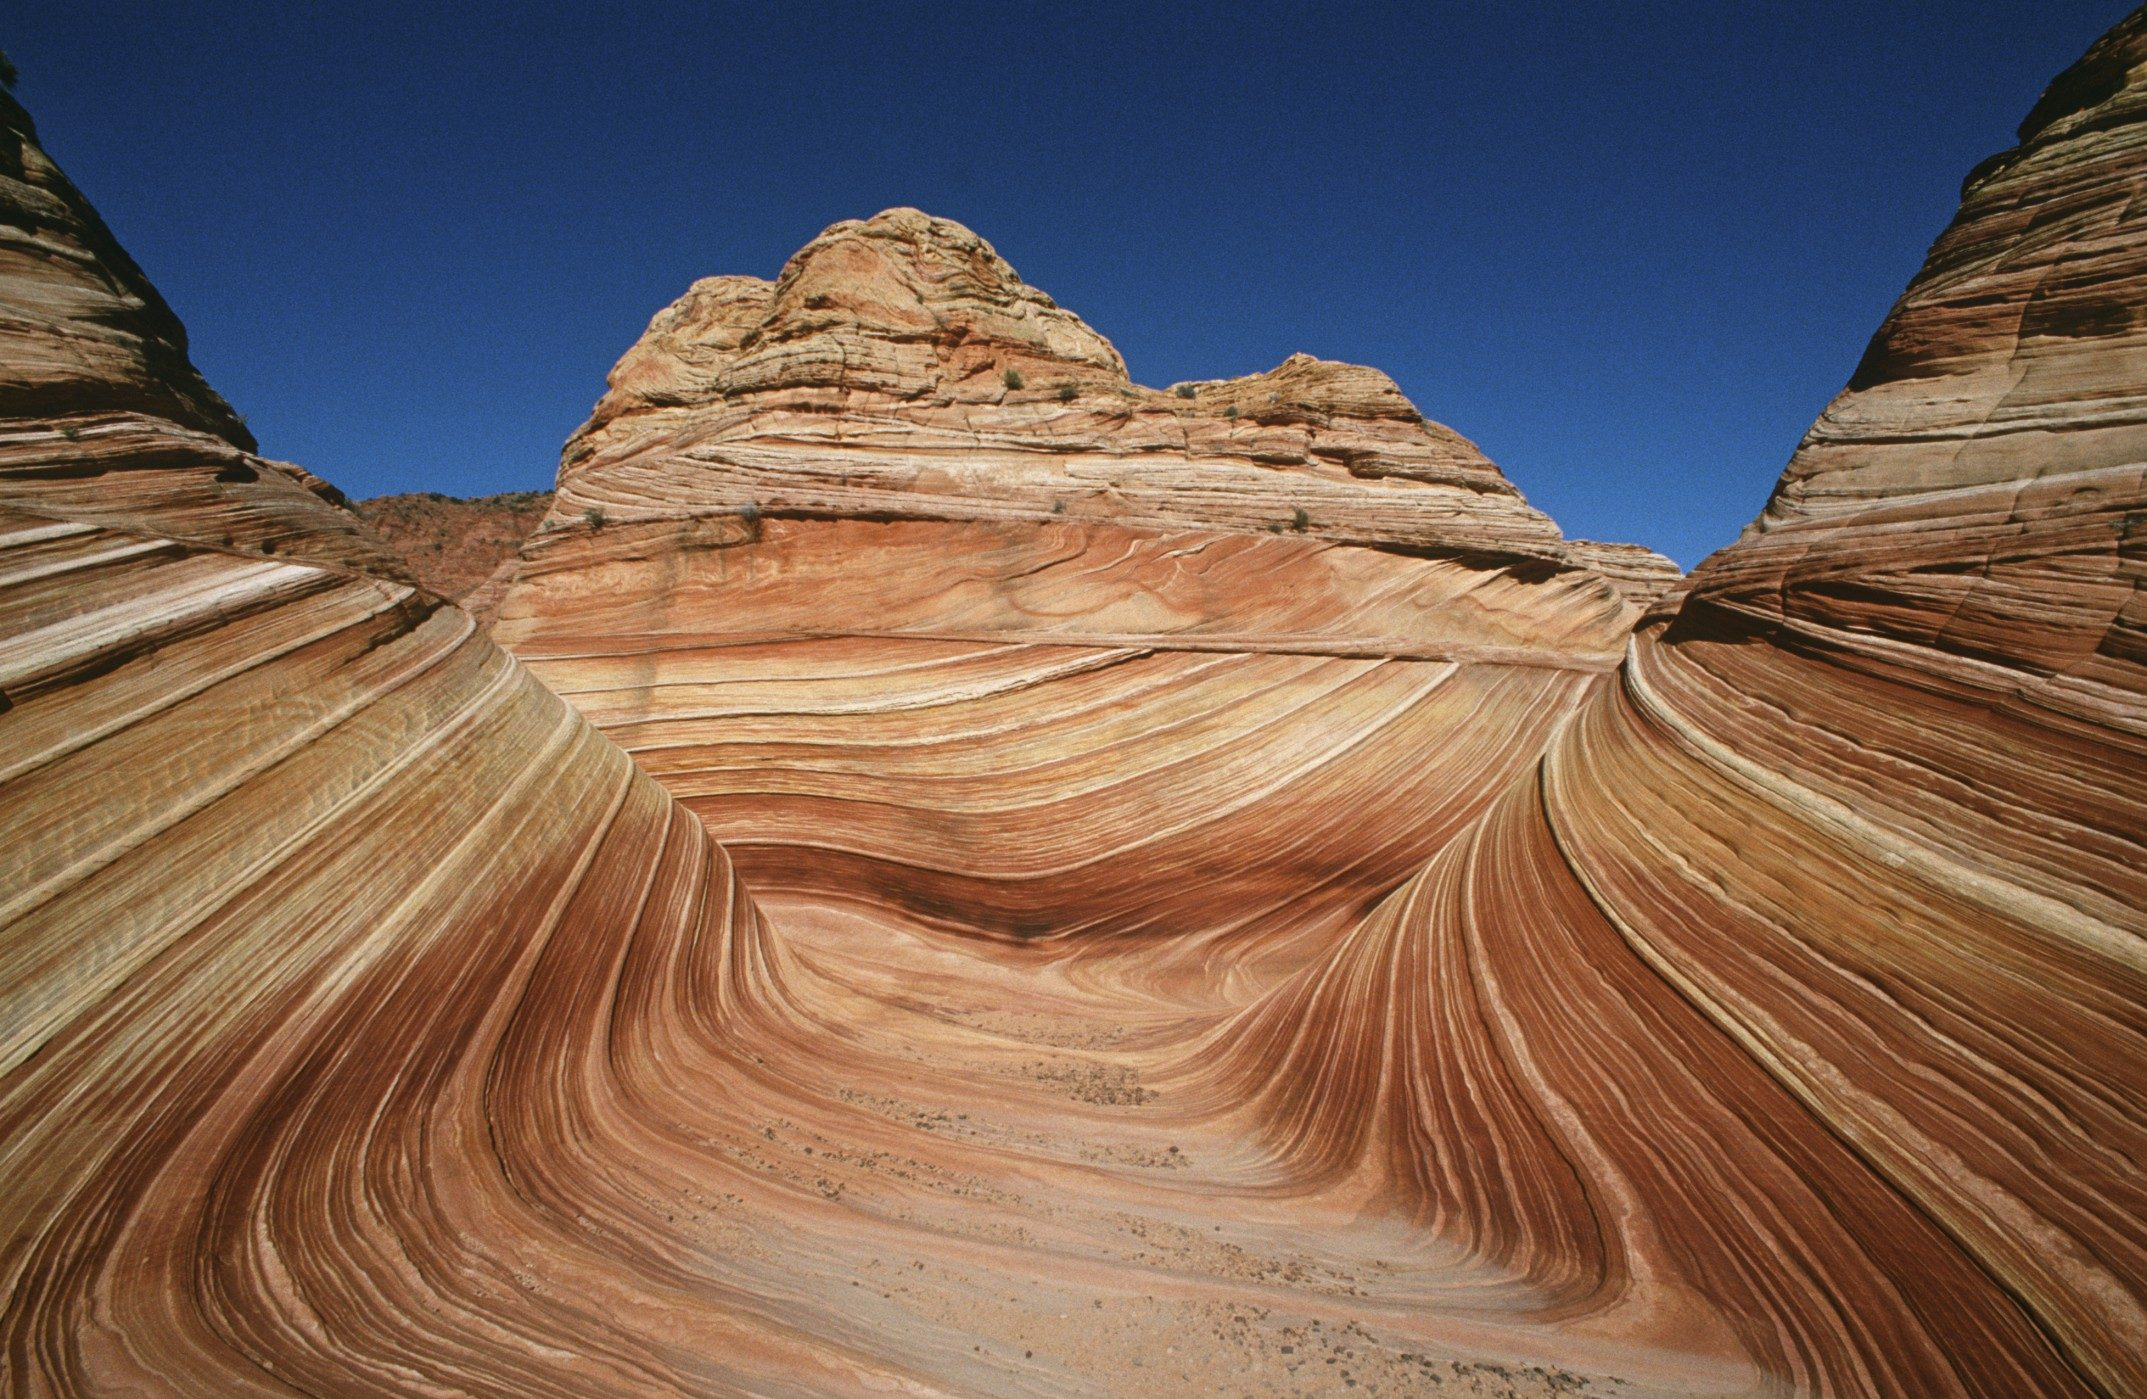 Travel: Paria Canyon, Arizona